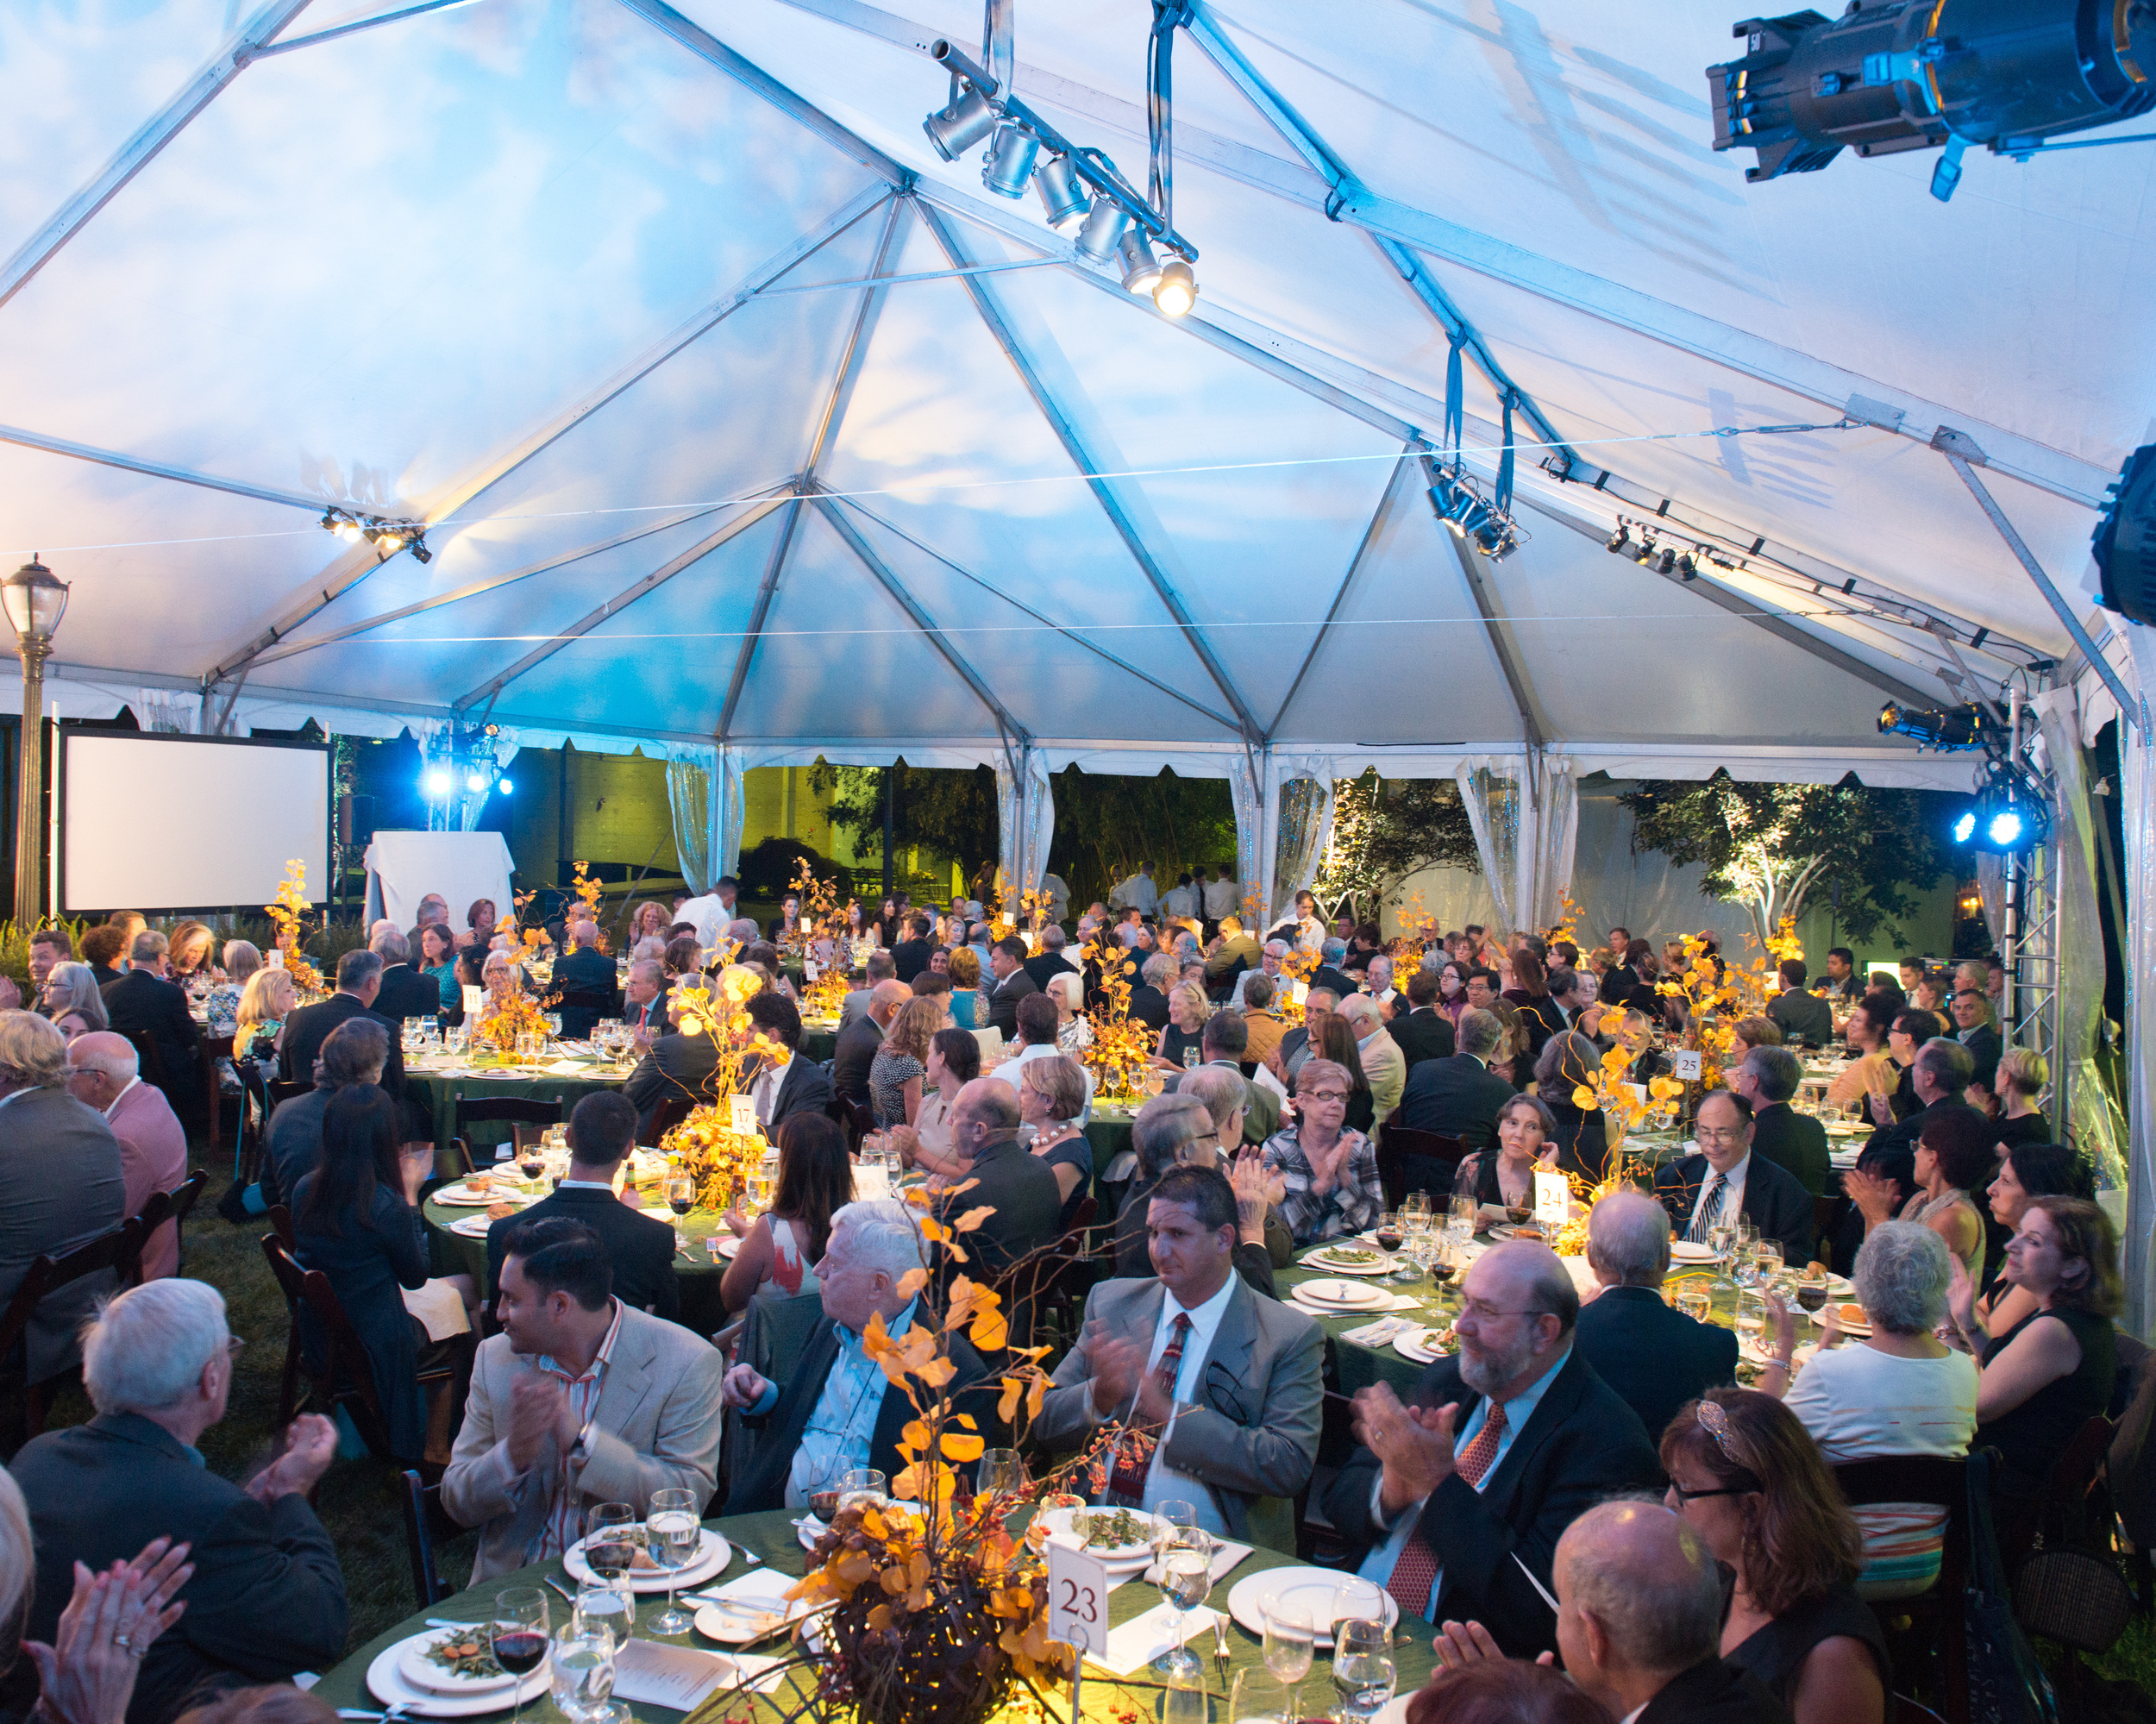 Tented fundraiser with pinspots